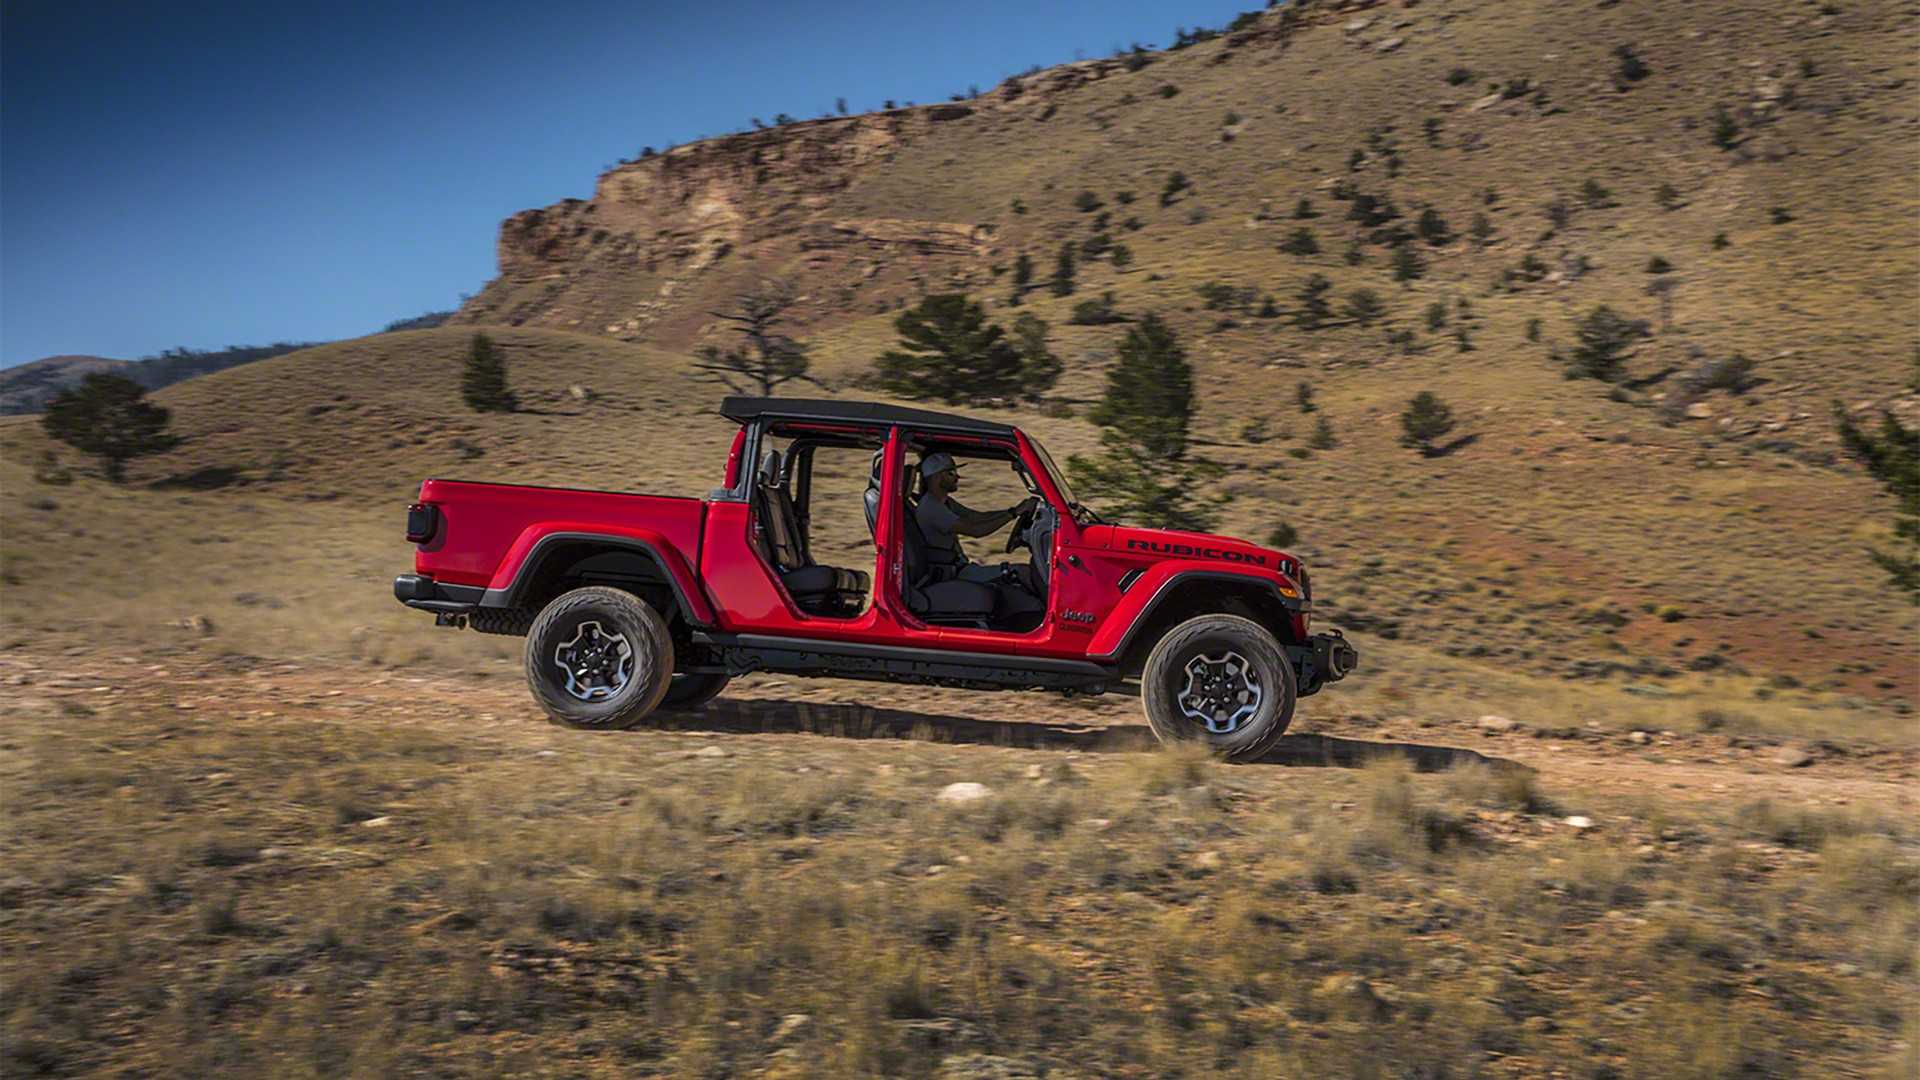 2020 jeep gladiator coming to europe to tease fans at camp